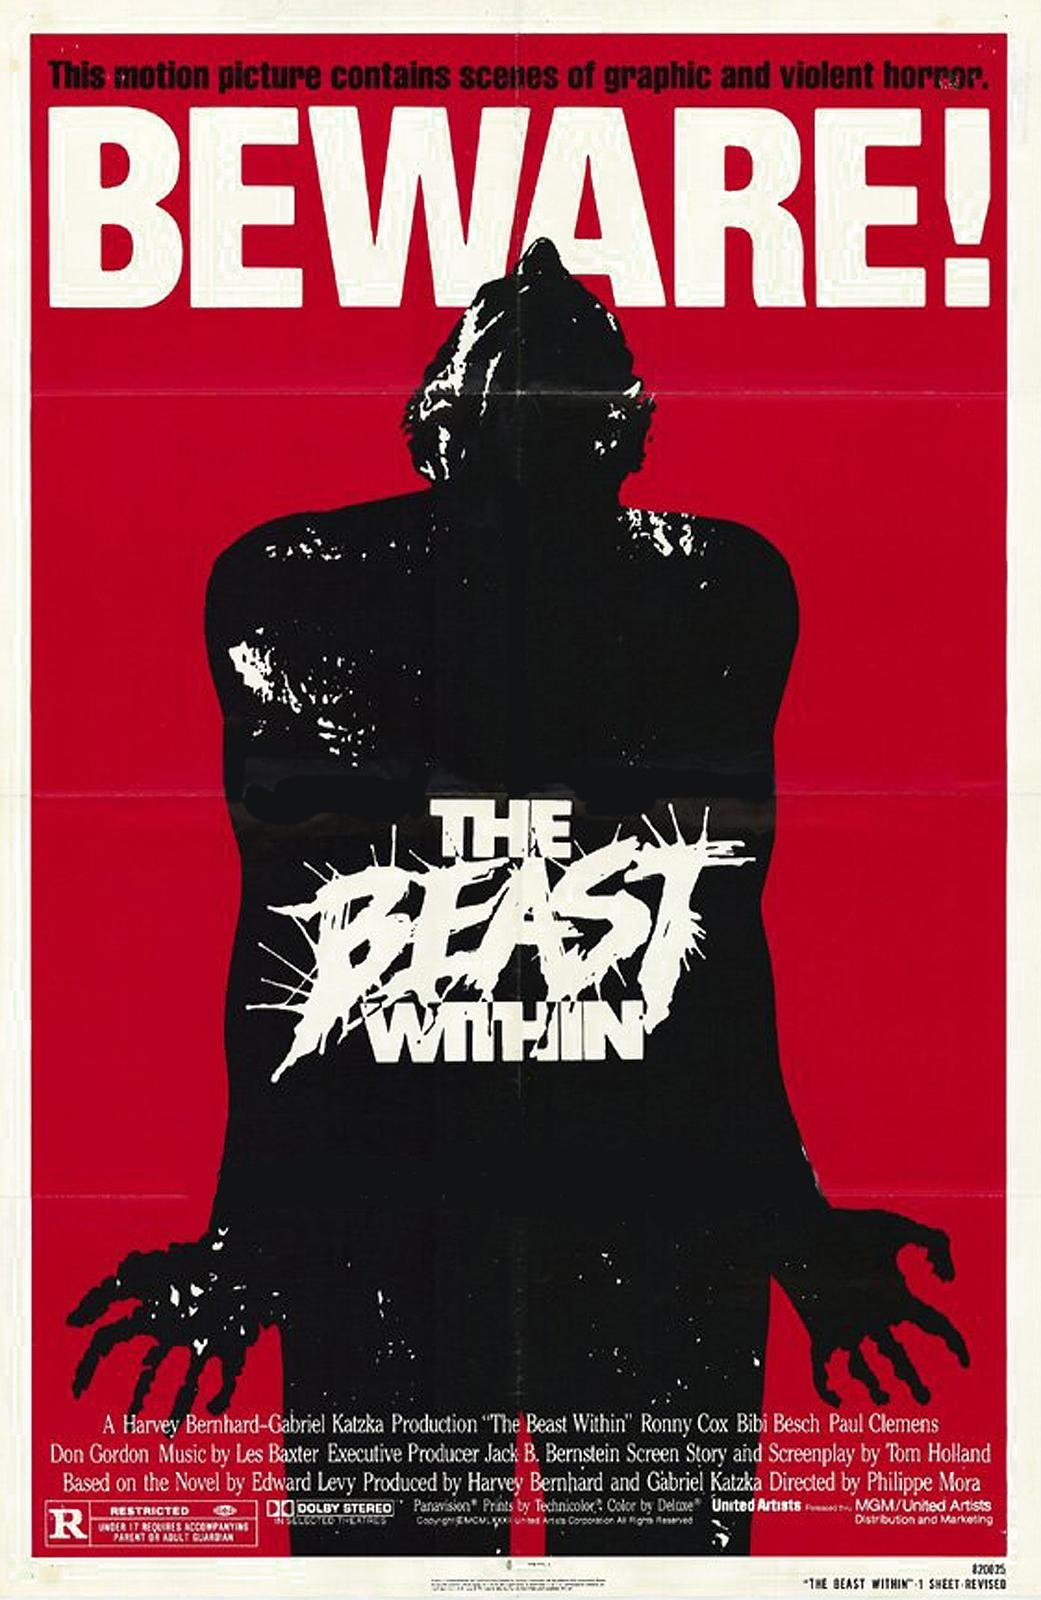 The Beast Within directed by Philippe Mora